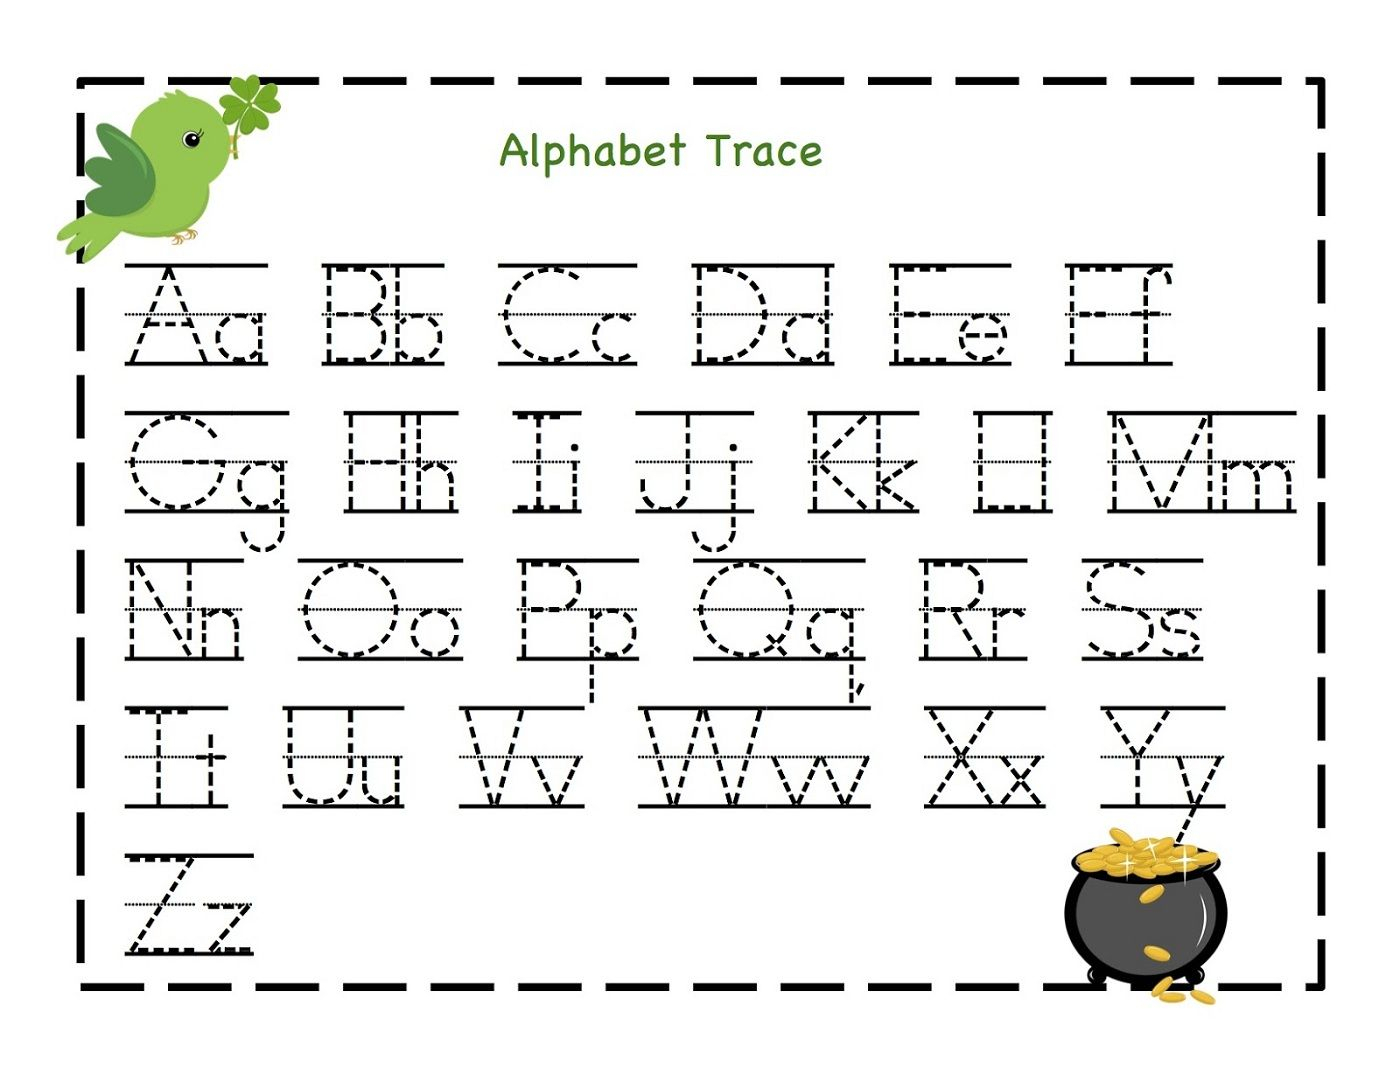 Traceable Letter Worksheets To Print | Alphabet Kindergarten pertaining to Alphabet Worksheets For Toddlers